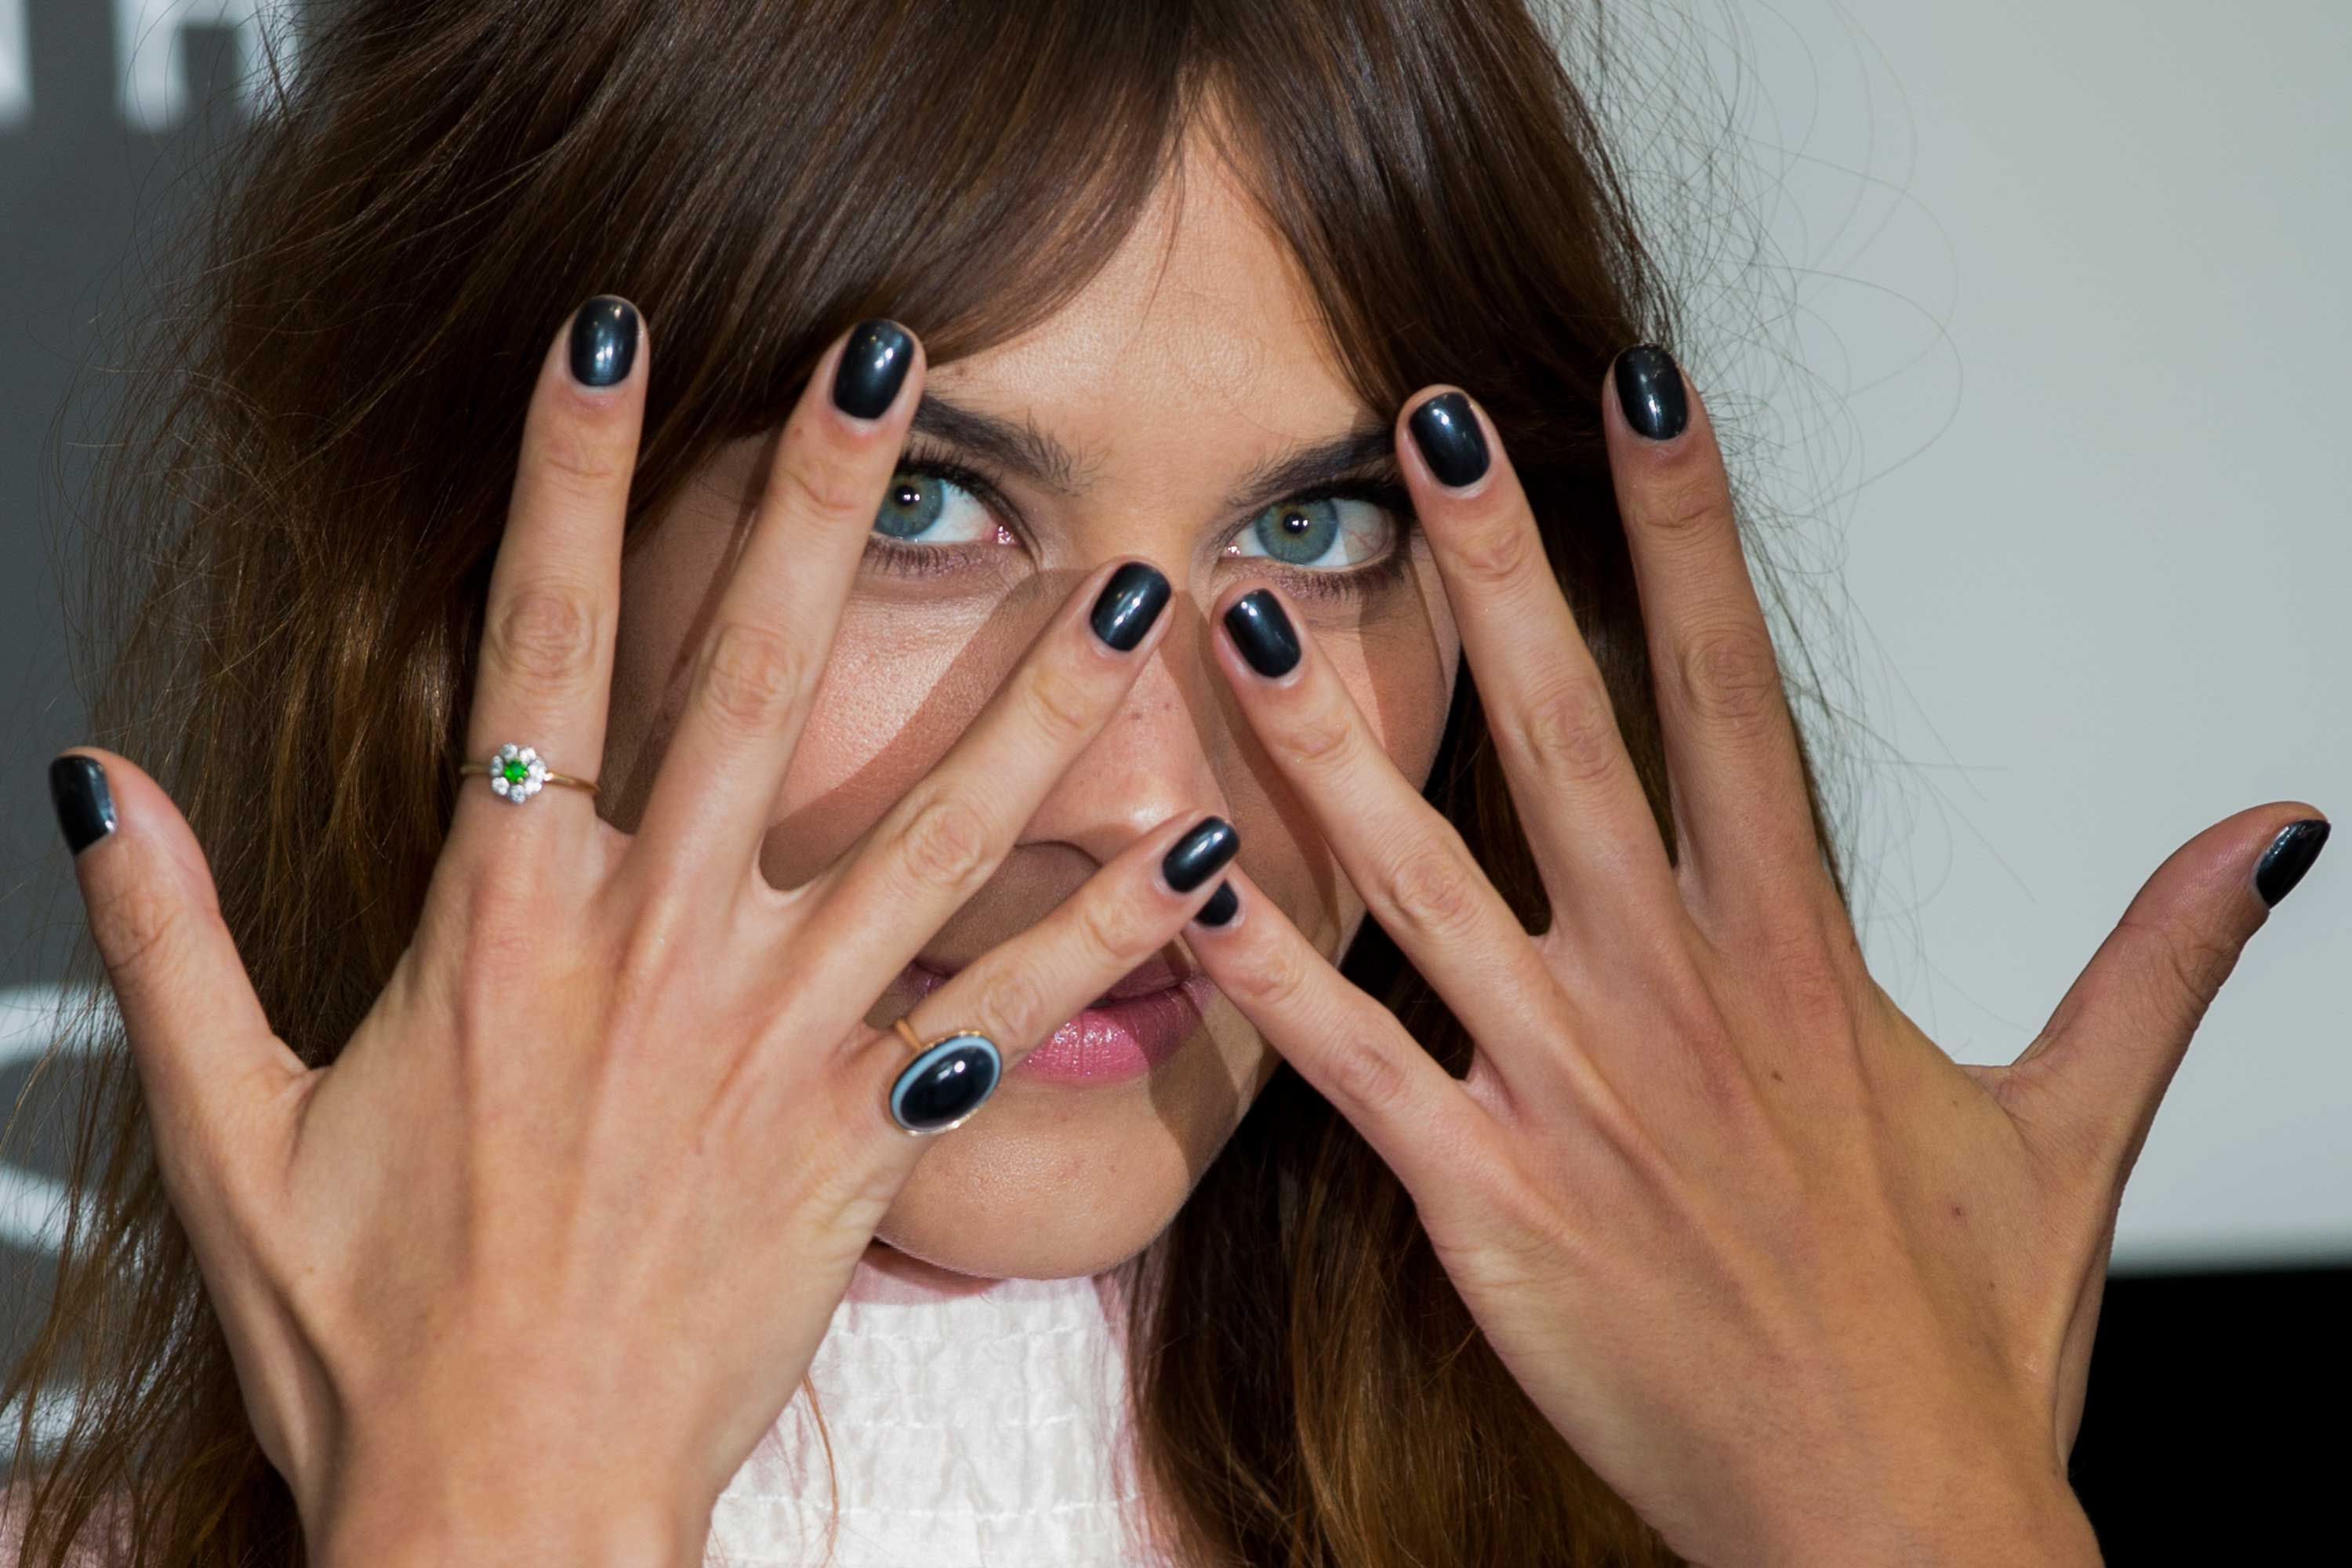 Best manicures in London - The salons and spas for nails